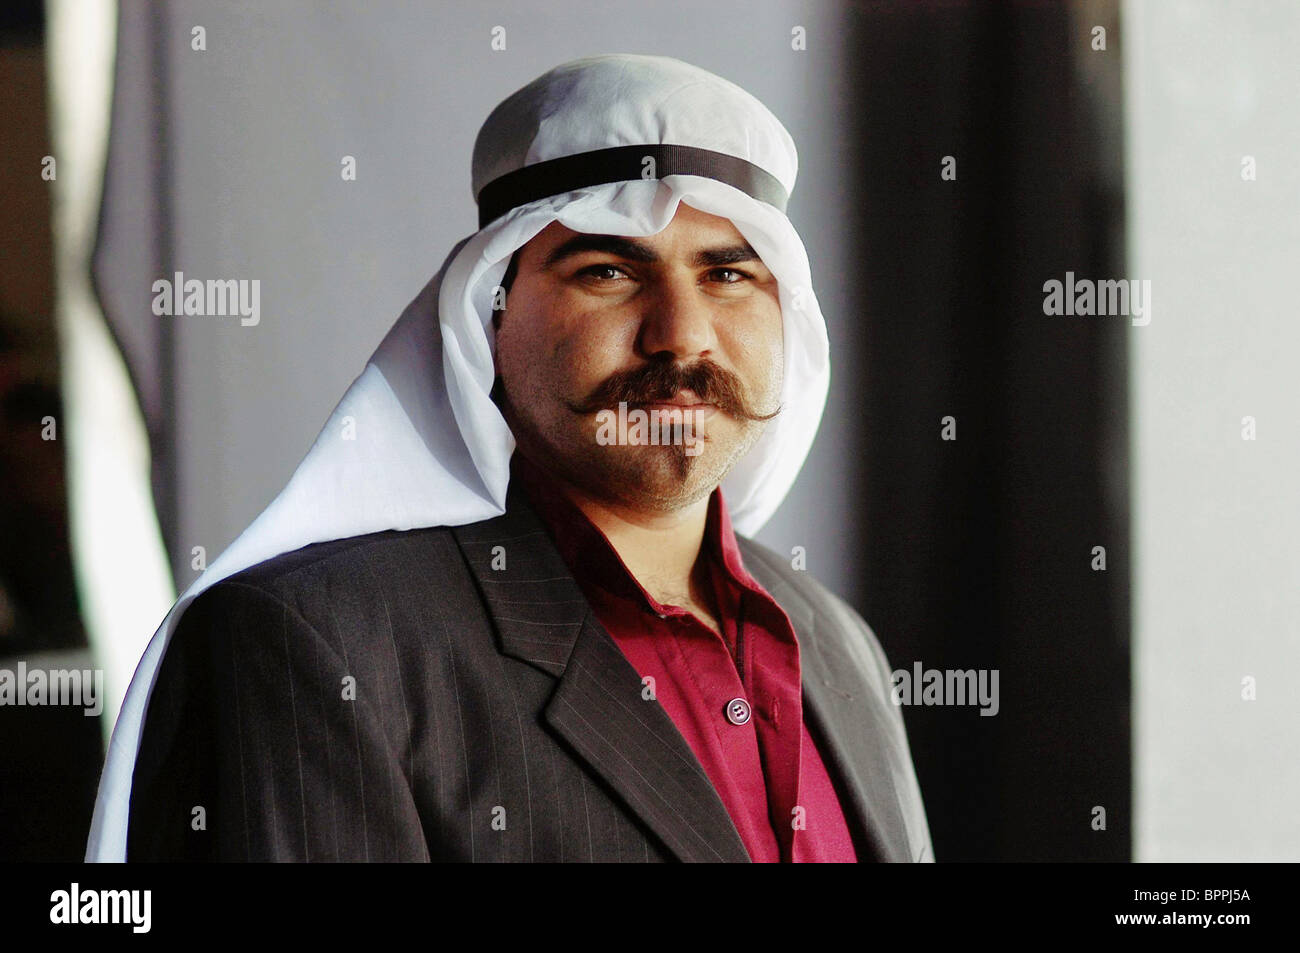 ERHAN UFAK VALLEY OF THE WOLVES: IRAQ; KURTLAR VADISI - IRAK (2006) Stock Photo